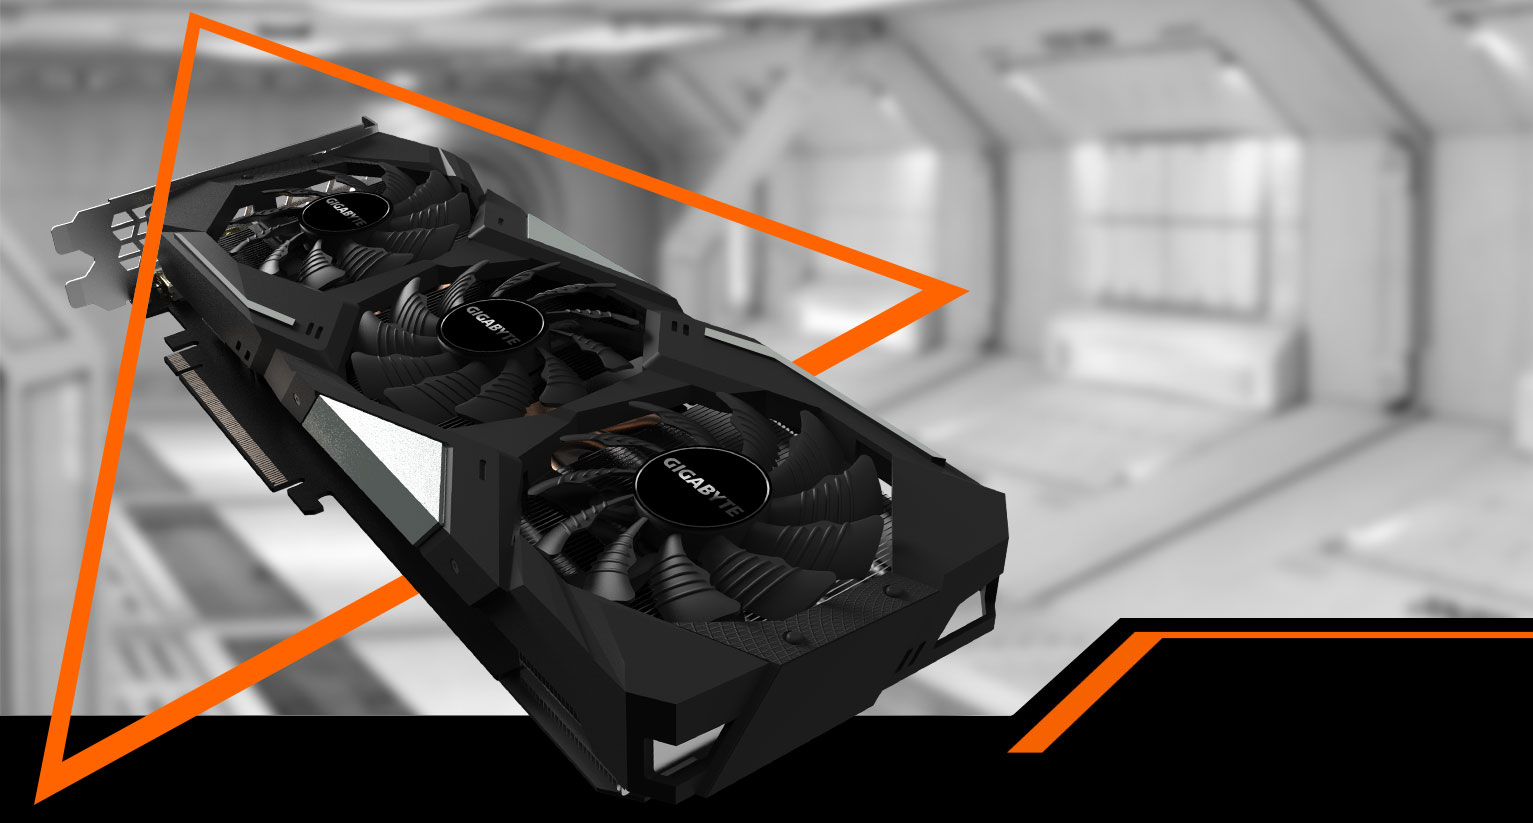 GeForce® RTX 2060 SUPER™ WINDFORCE OC 8G Graphics Card with background